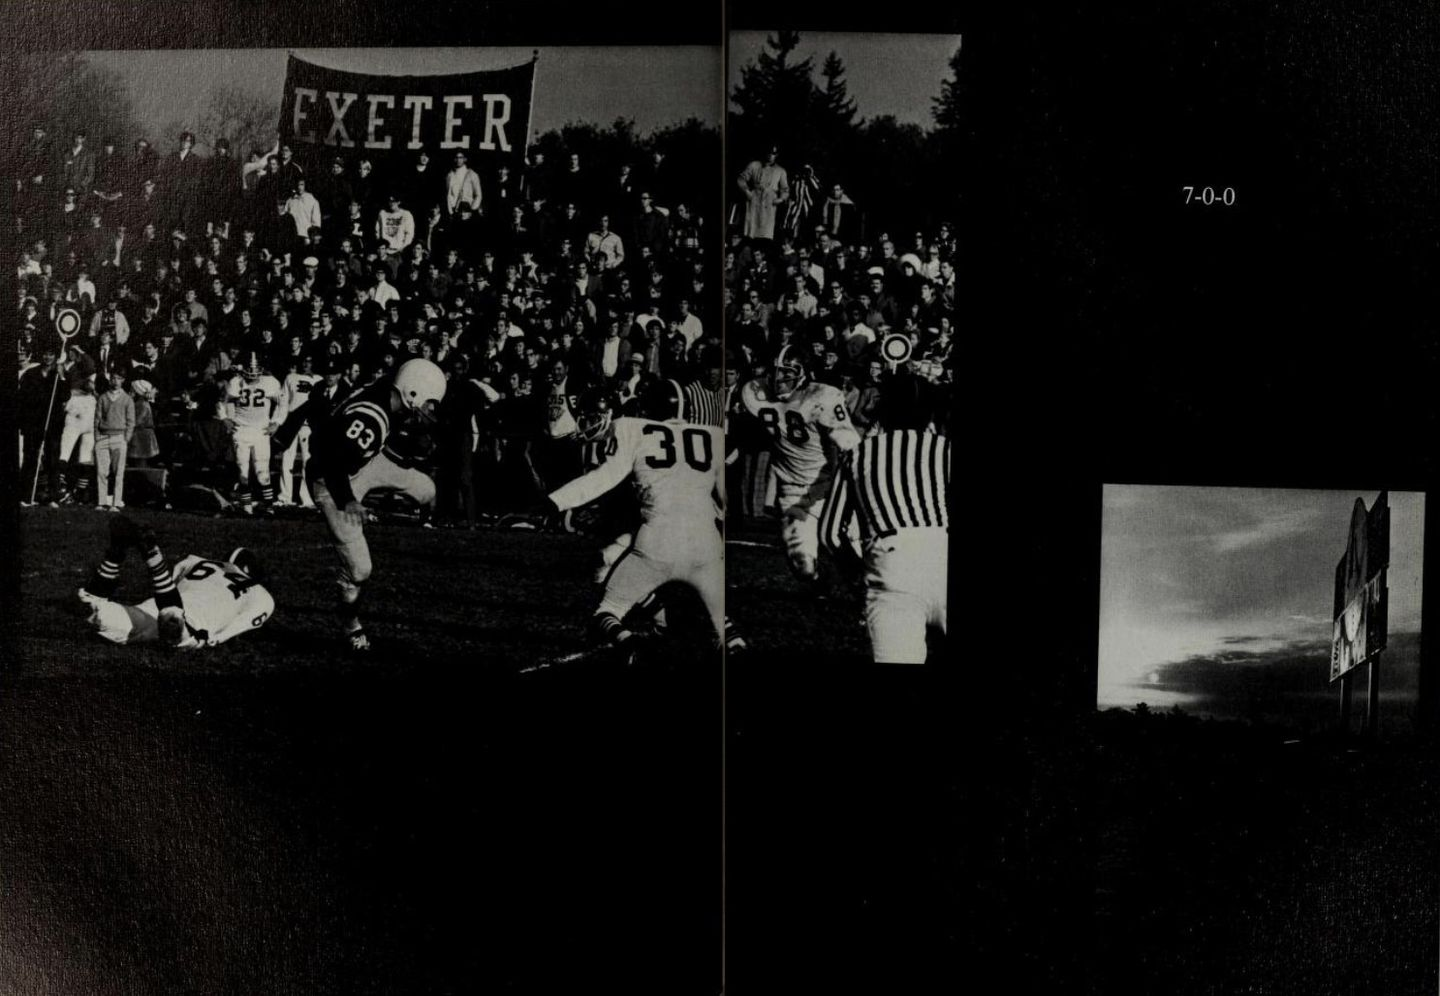 An Andover yearbook spread commemorating the team's win against Exeter and the undefeated season.